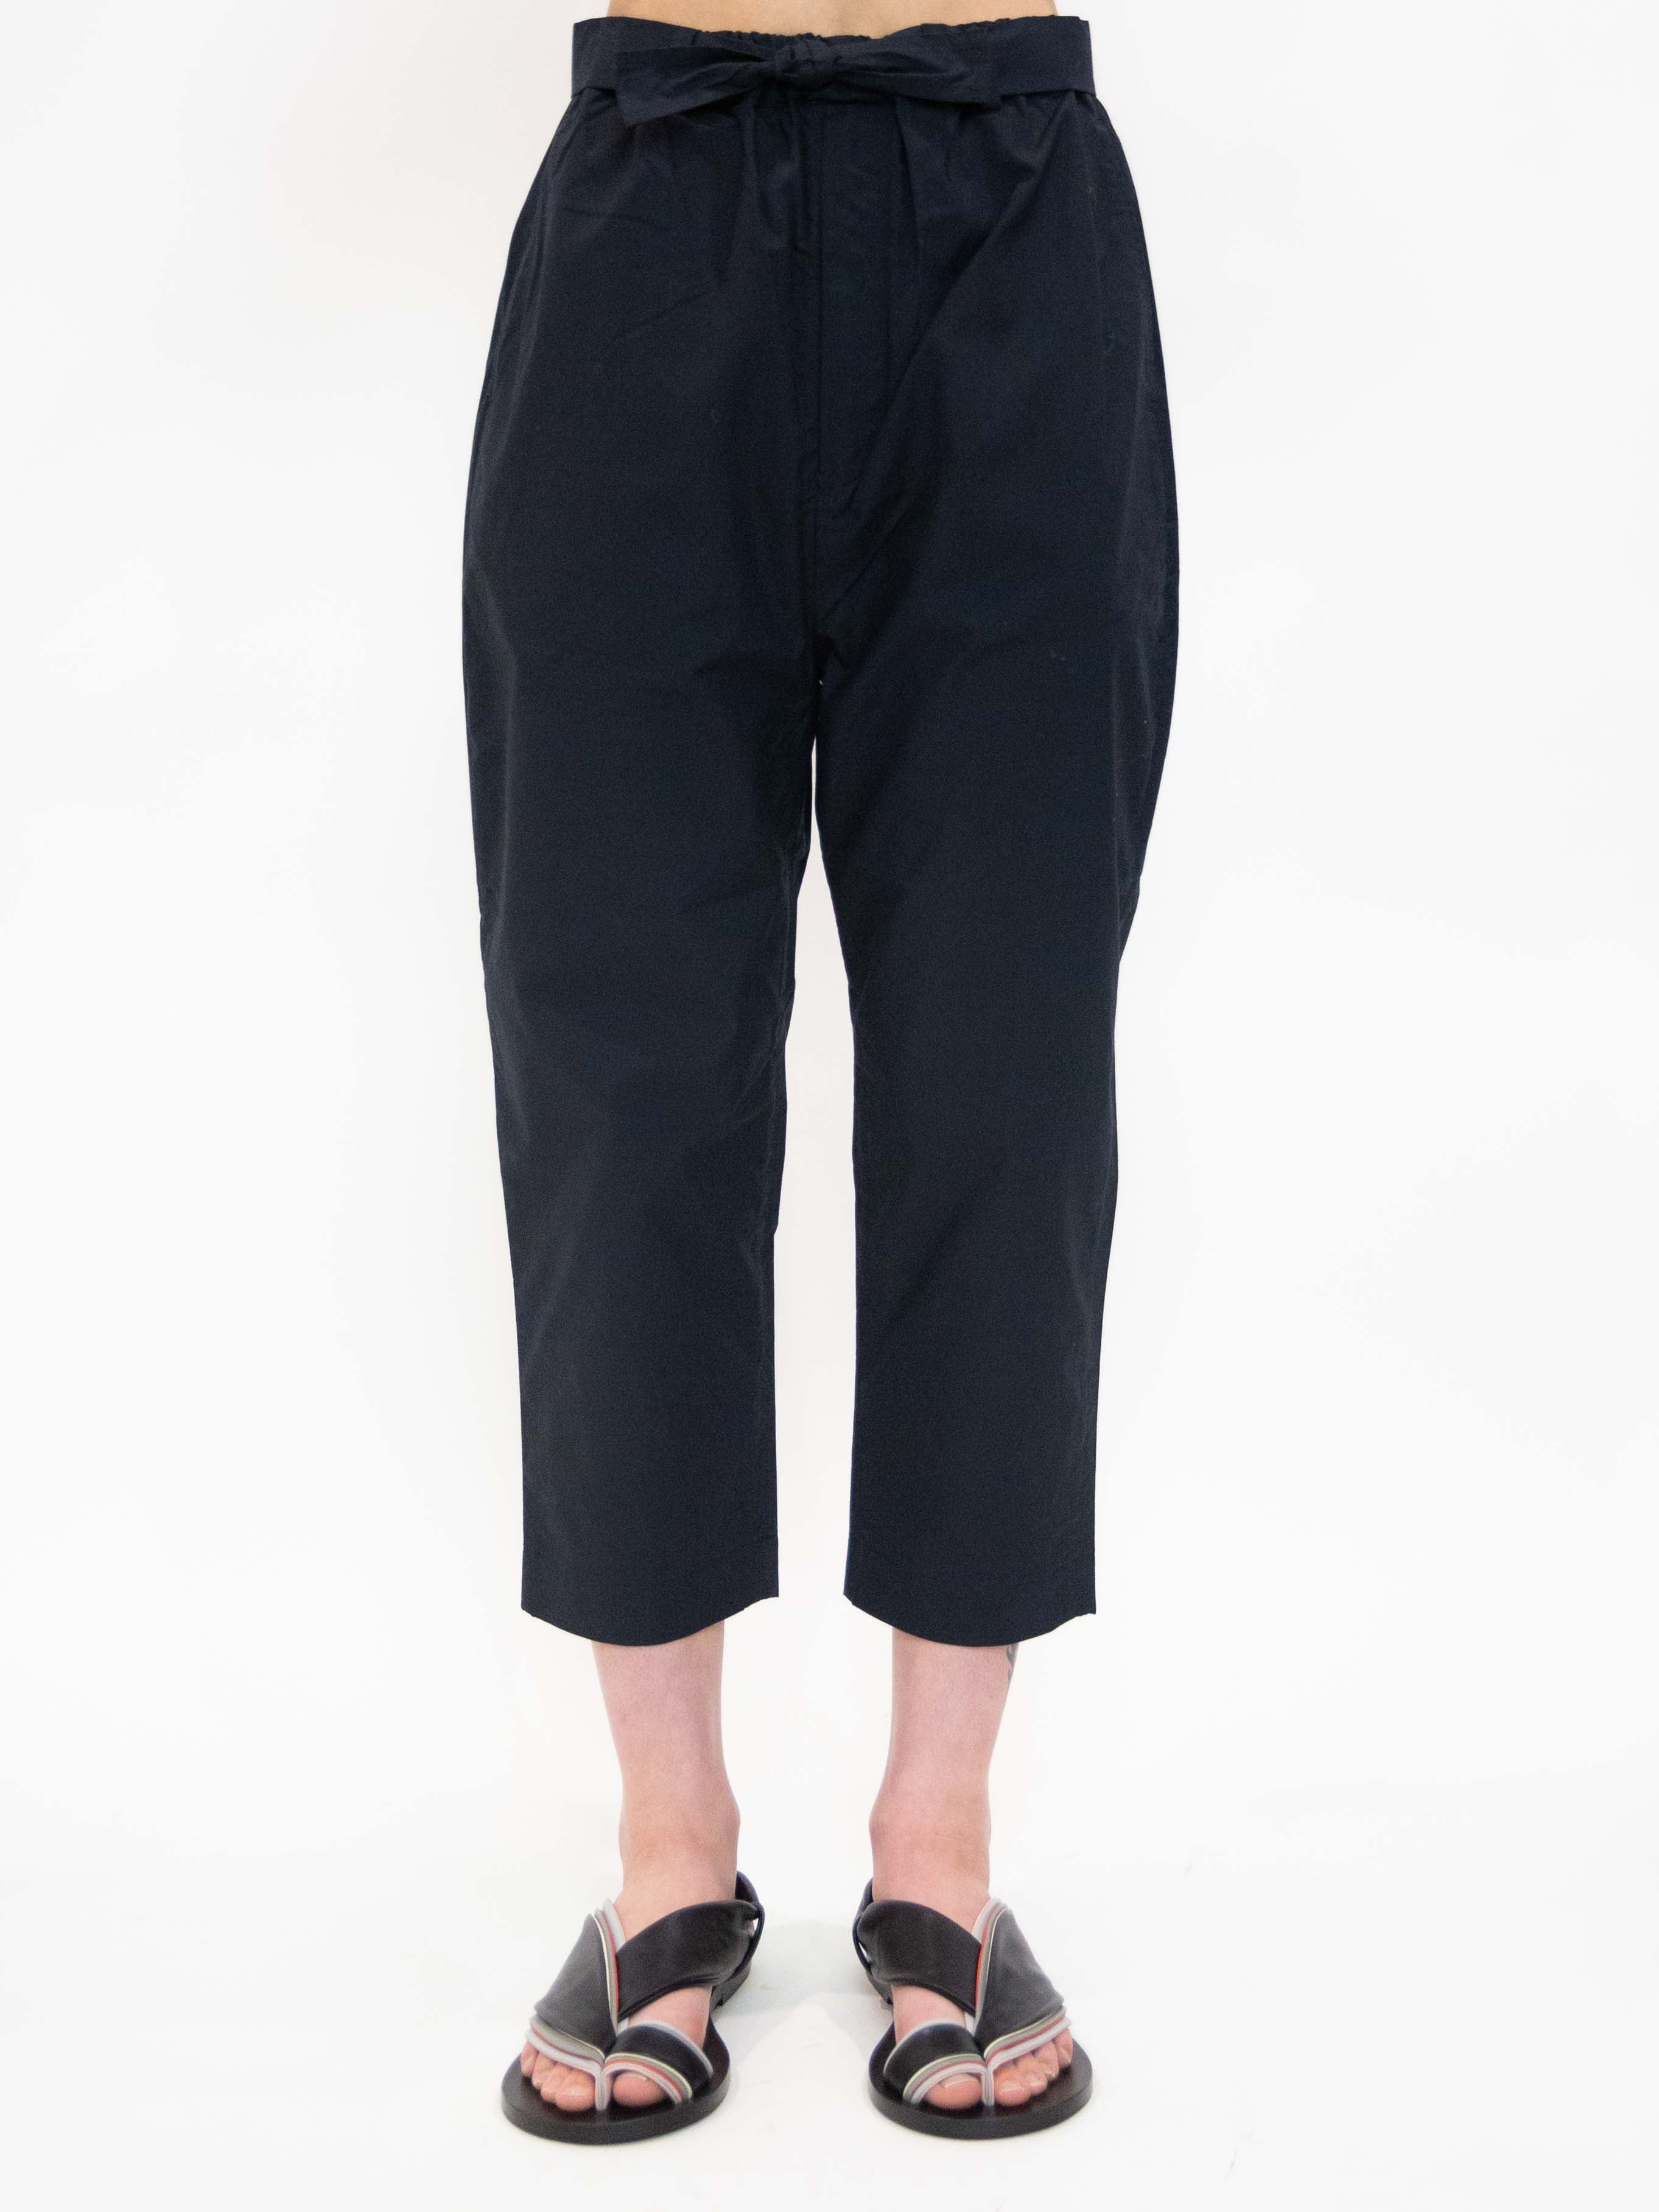 High Waisted Obi Pants by Cosmic Wonder